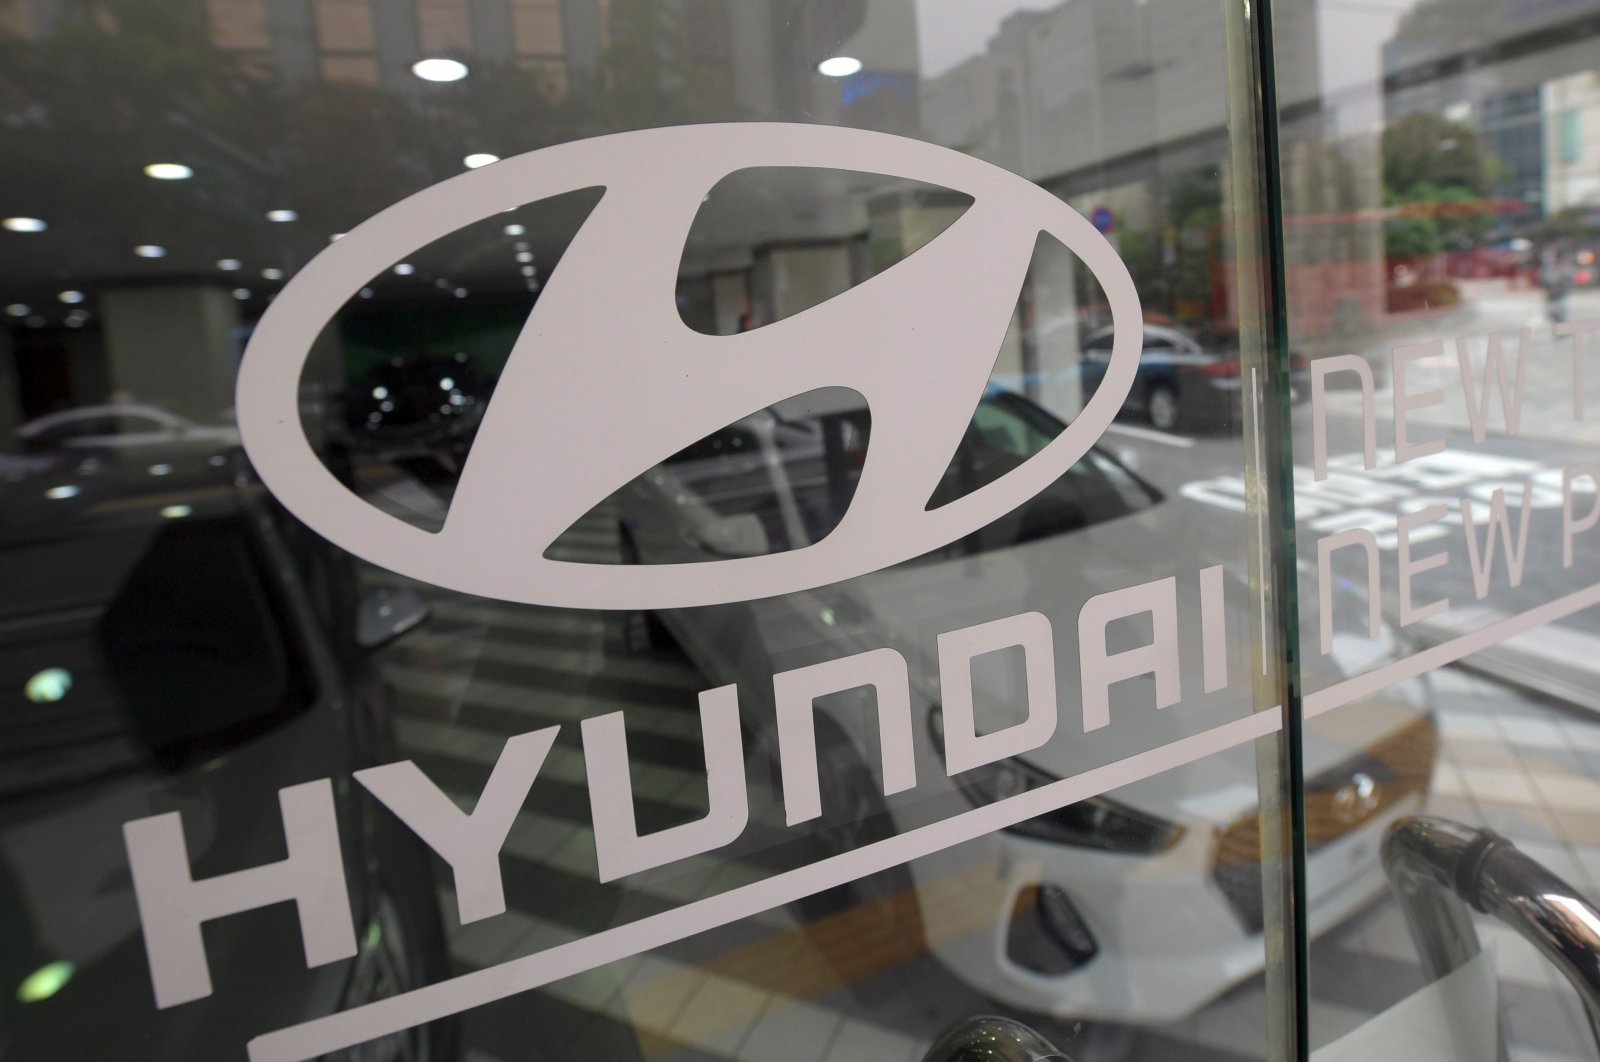 This Oct. 26, 2016 file photo shows the logo of Hyundai Motor on a glass door at a dealership in Seoul. (AFP Photo)